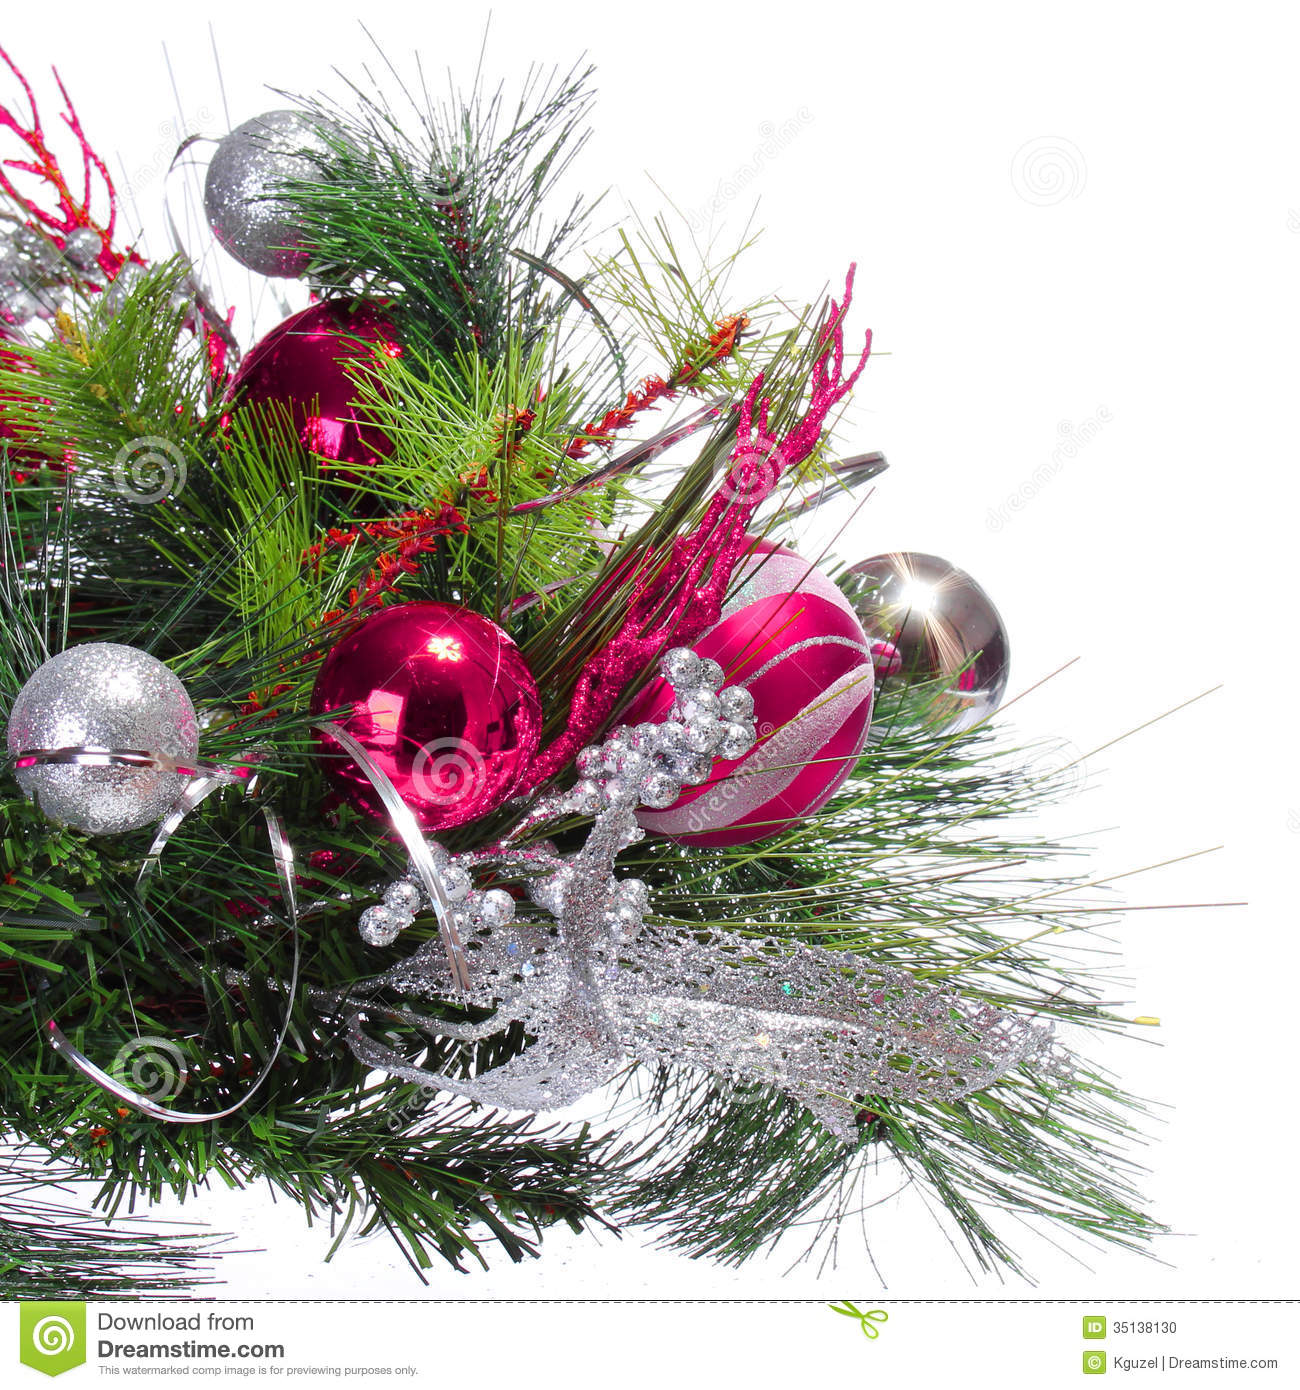 Christmas Decorations With Tree Branches: Christmas Decoration. Hot Pink Balls On Christmas Tree